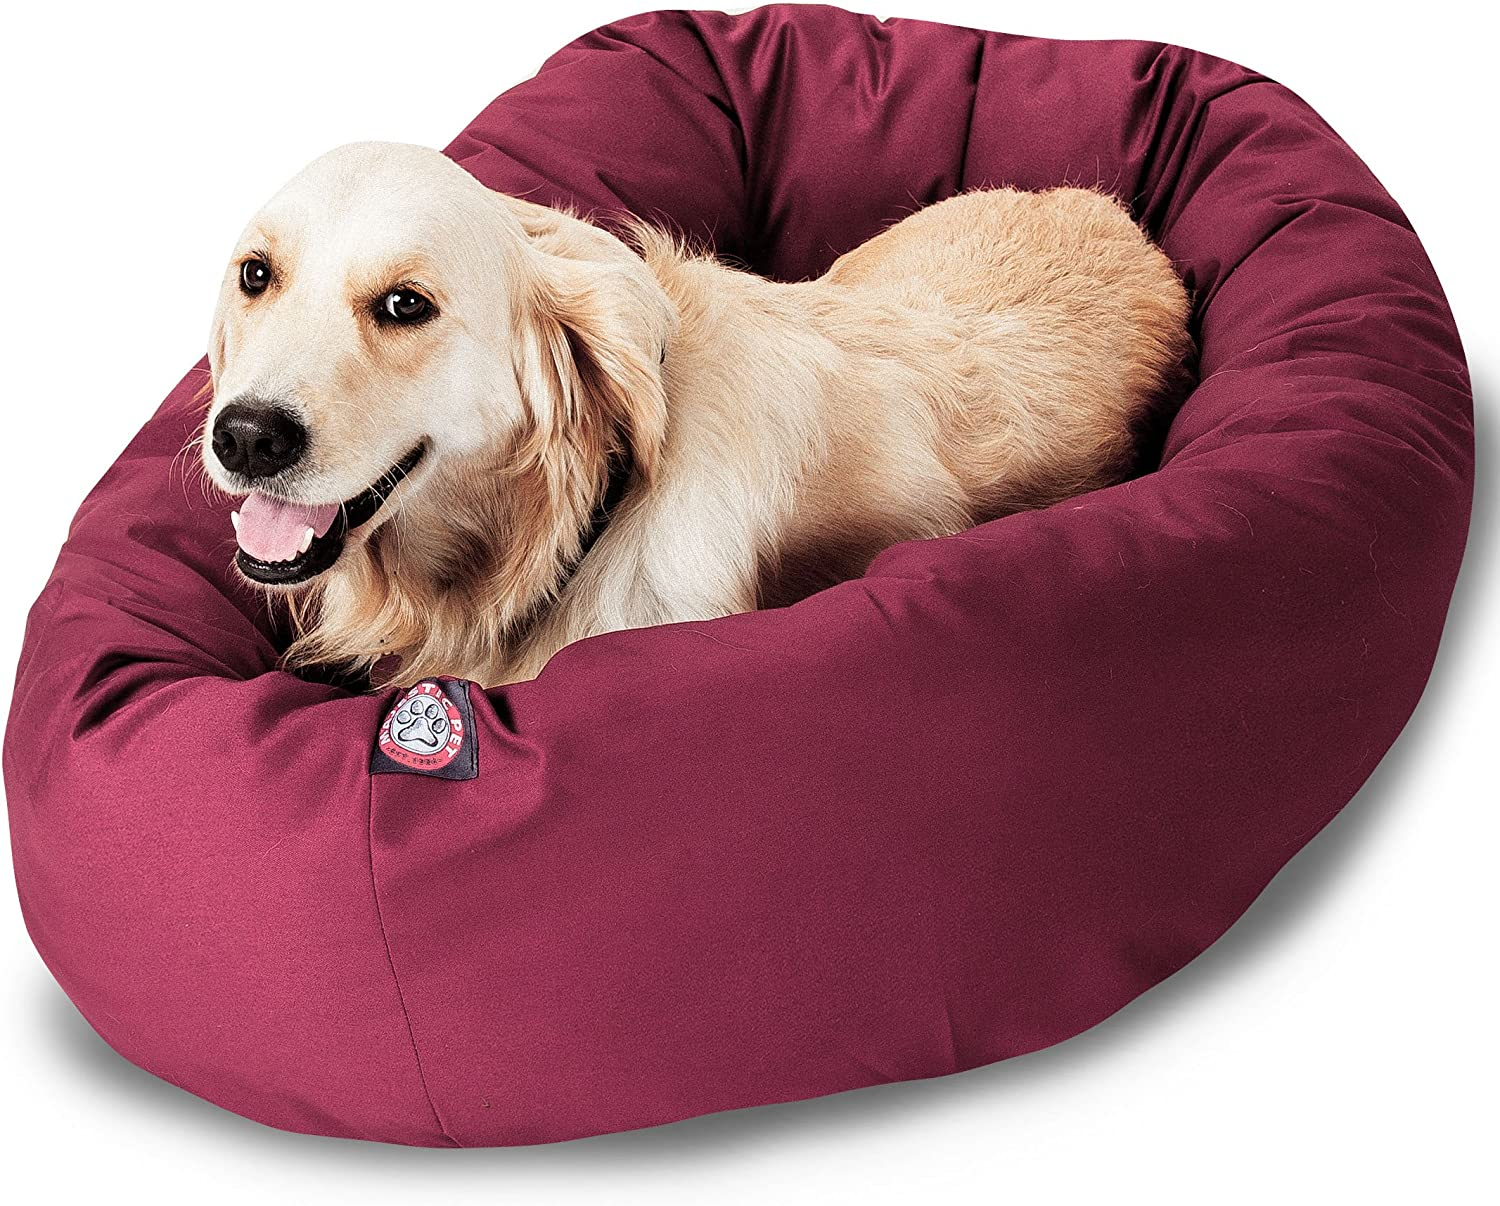 Majestic Pet 40Inch Bagel Bed for Pets, Burgundy